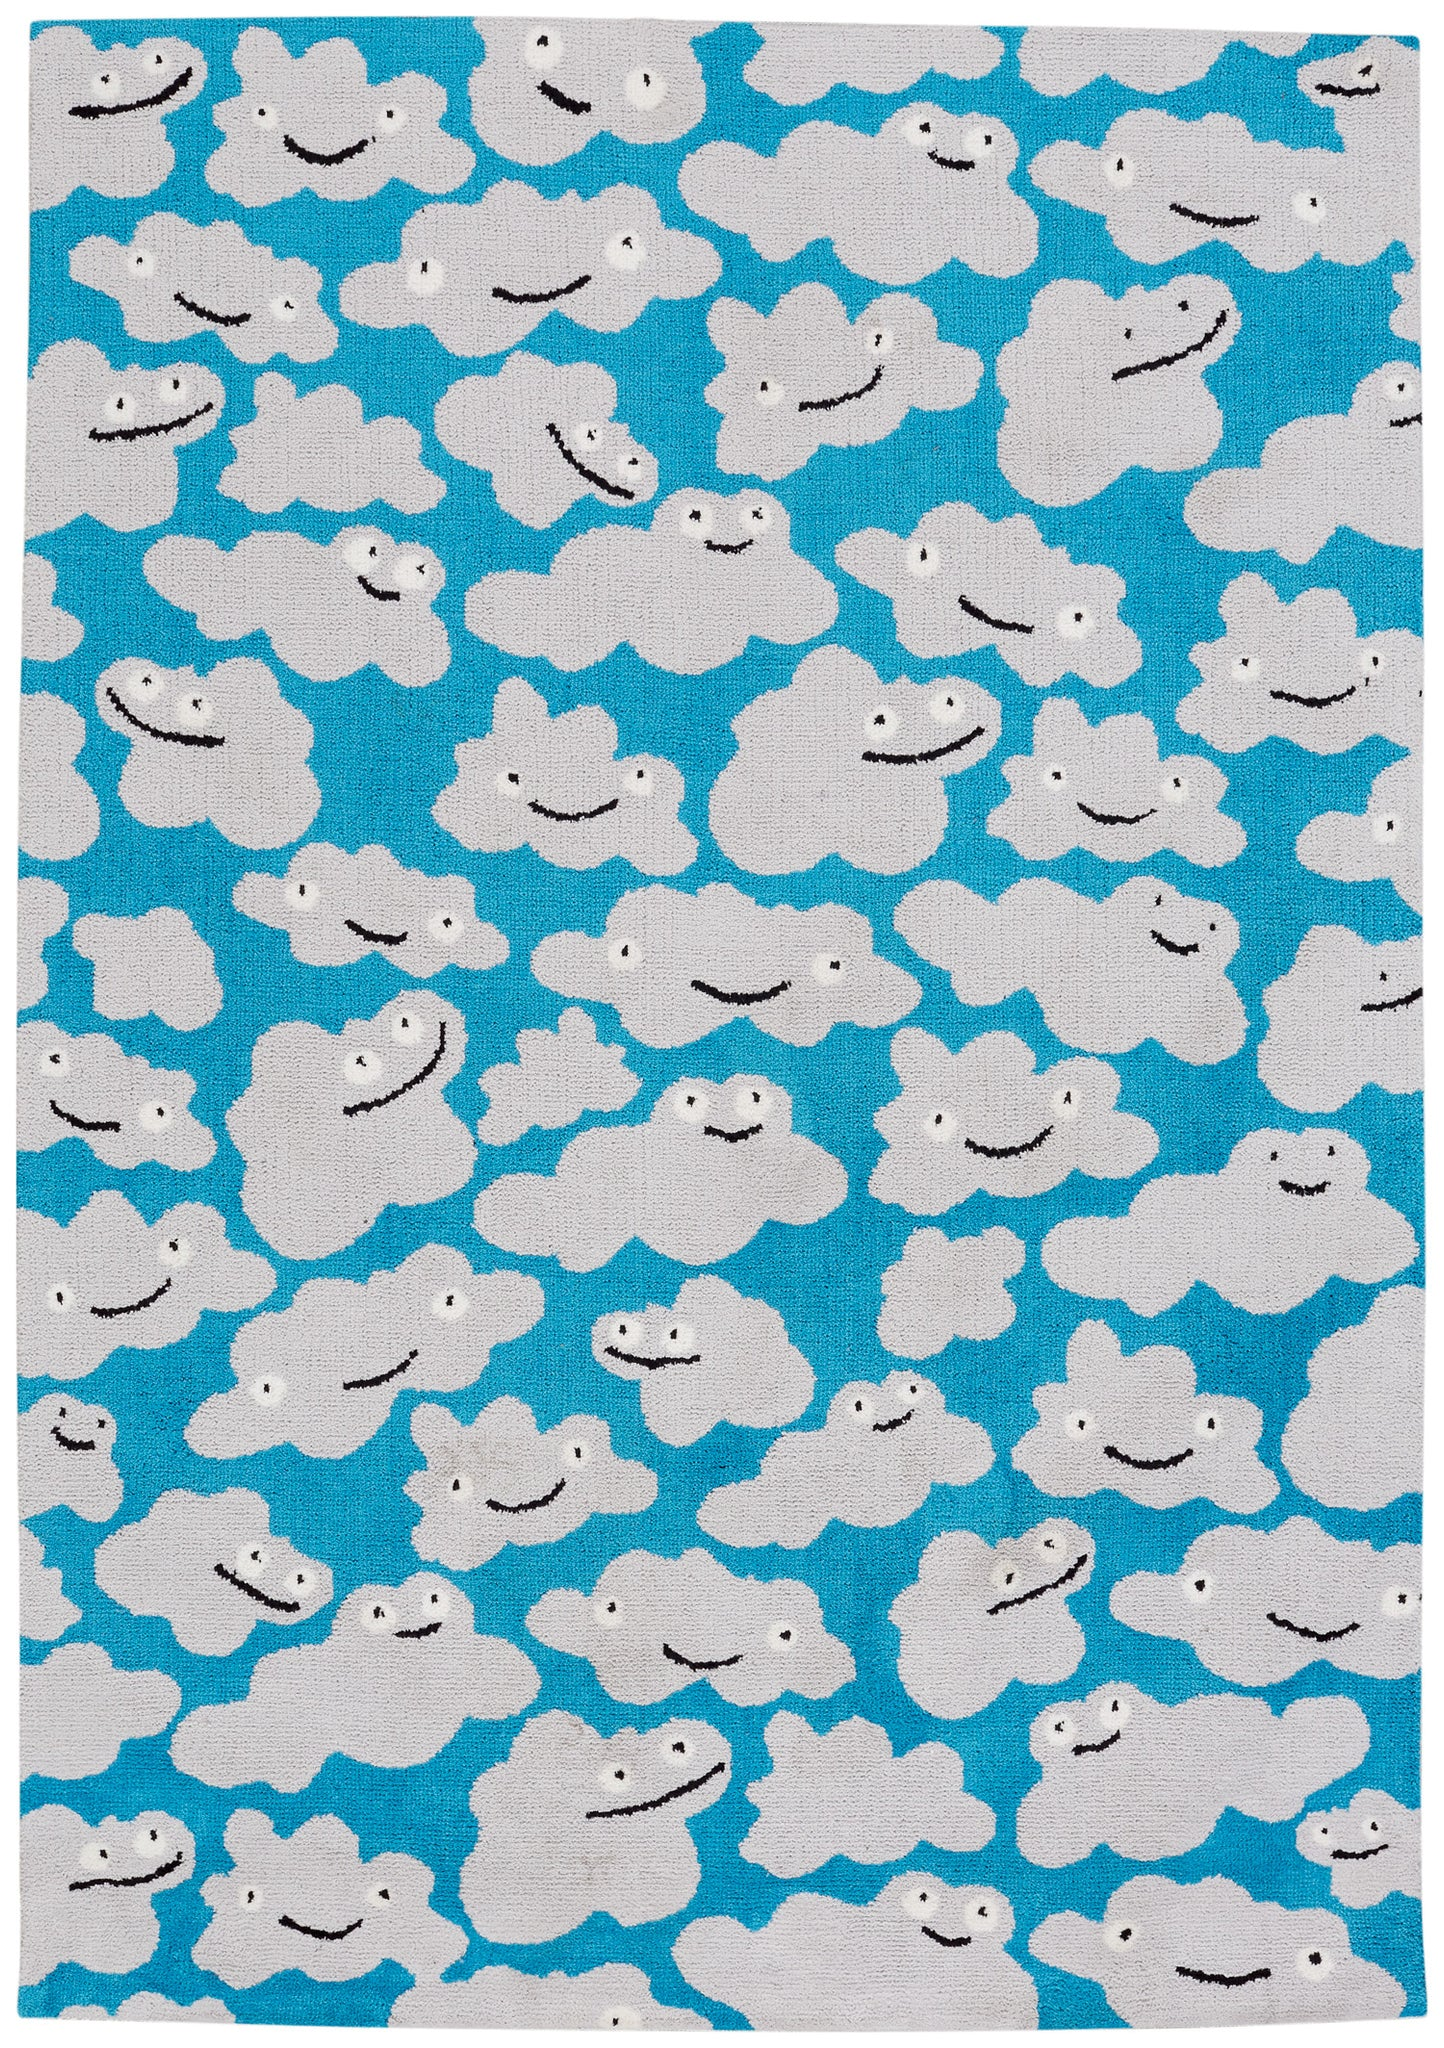 Capel Sky Puffy 6300 Azure 434 Area Rug by Hable Construction main image